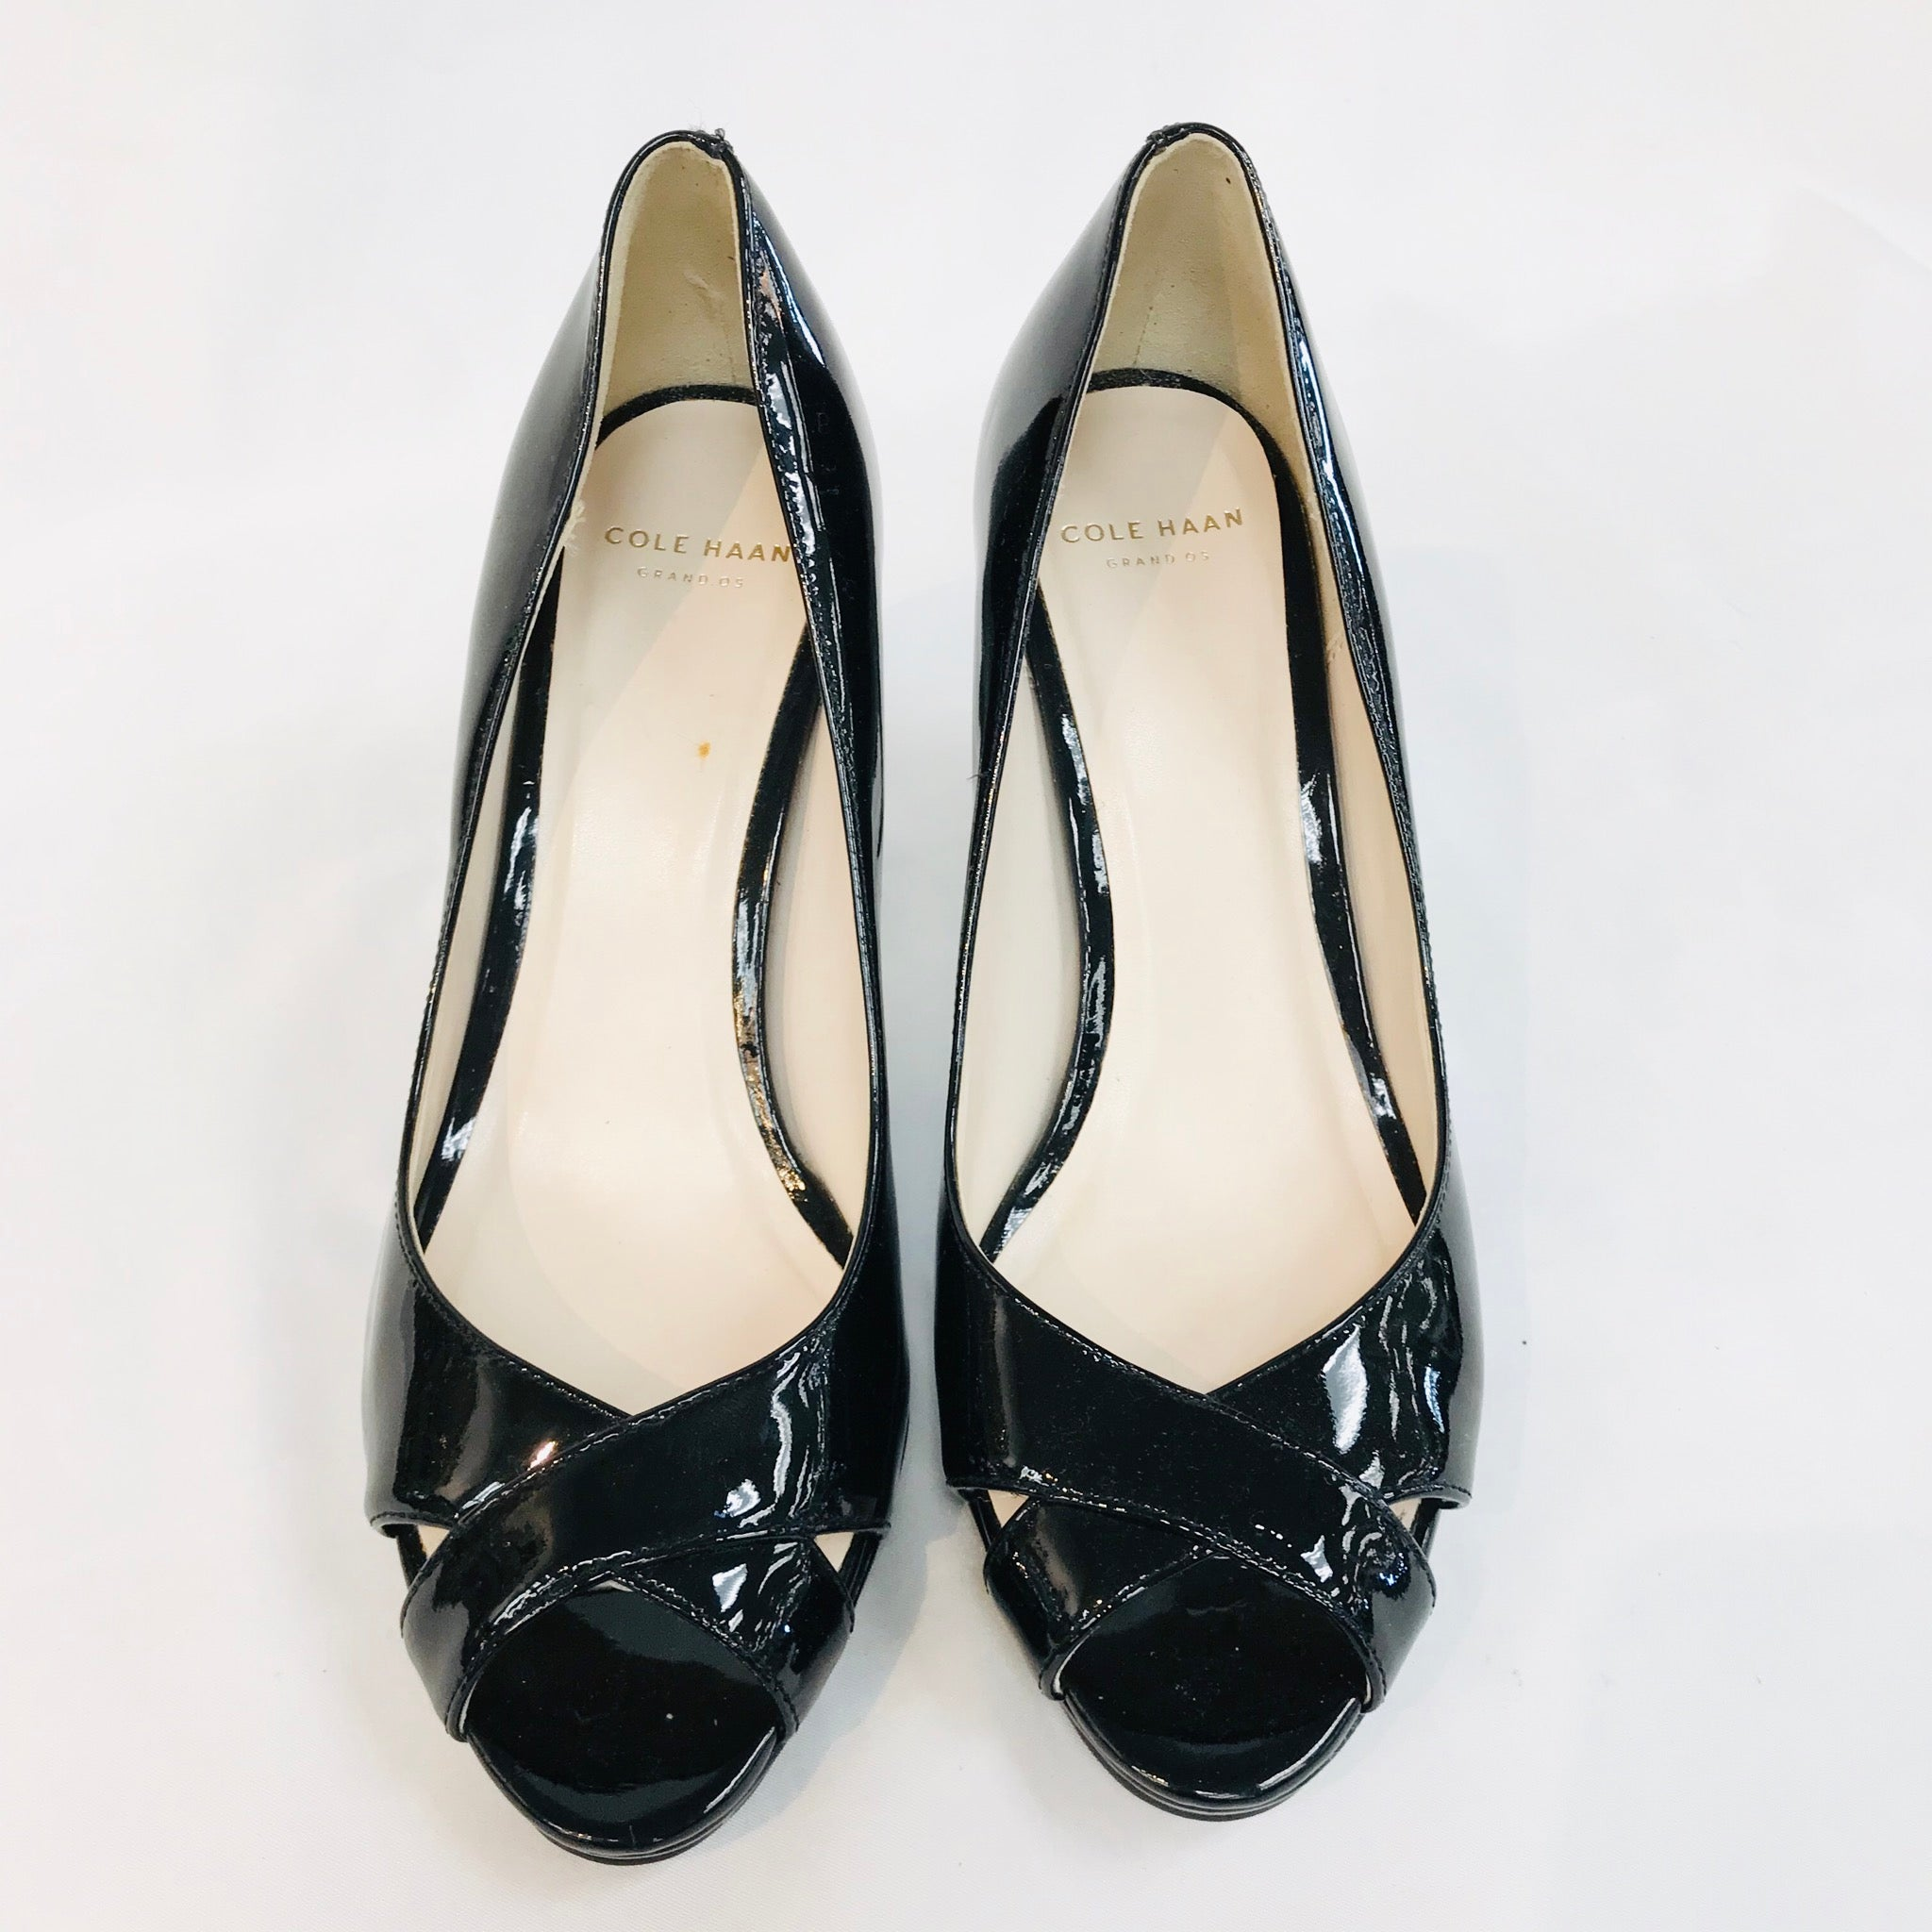 Primary Photo - BRAND: COLE-HAAN O <BR>STYLE: SHOES LOW<BR>COLOR: BLACK <BR>SIZE: 6 <BR>SKU: 262-26241-36246<BR>AS IS